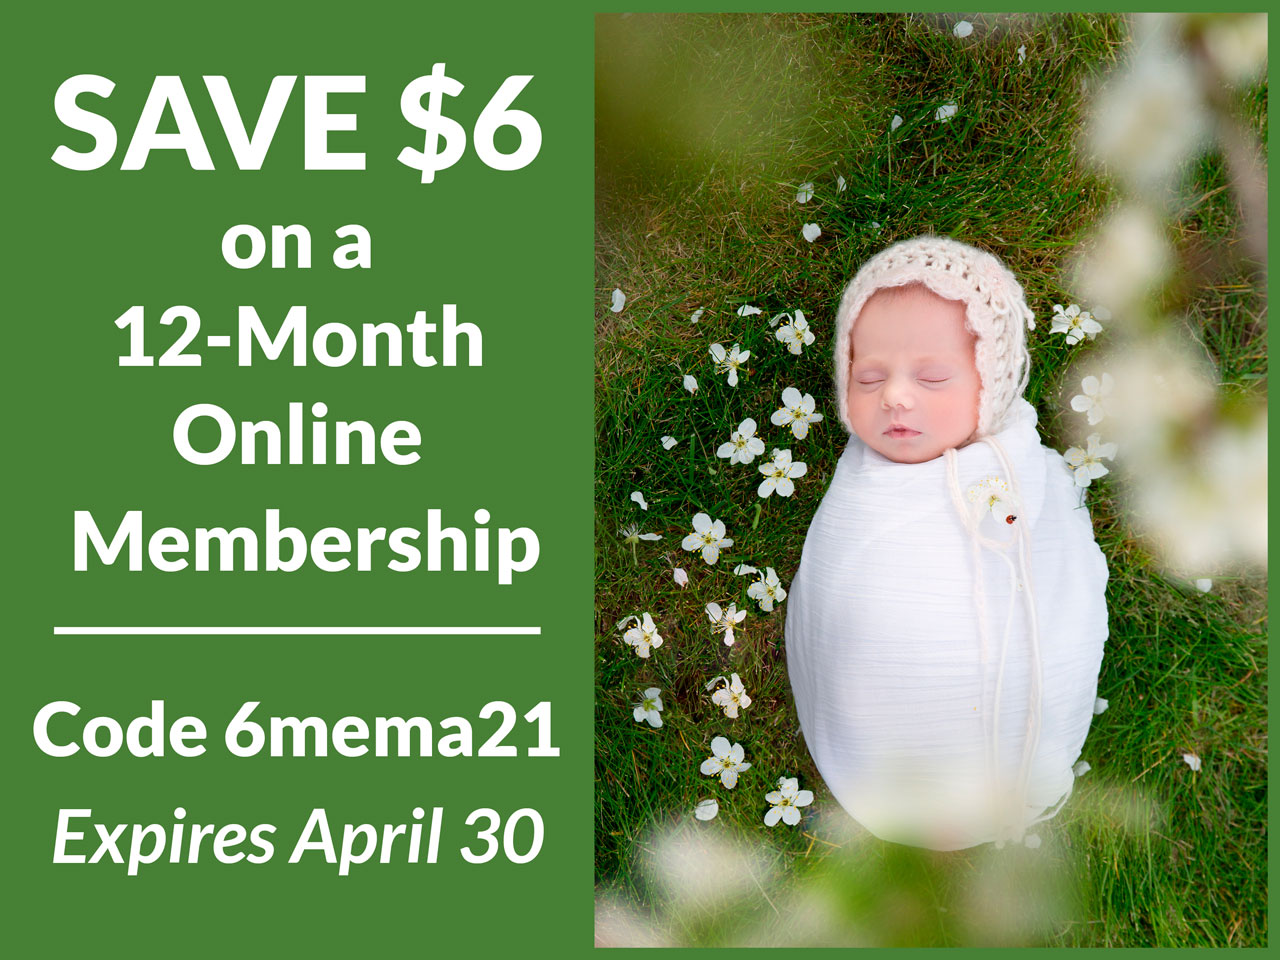 Save $6 on a one-year membership